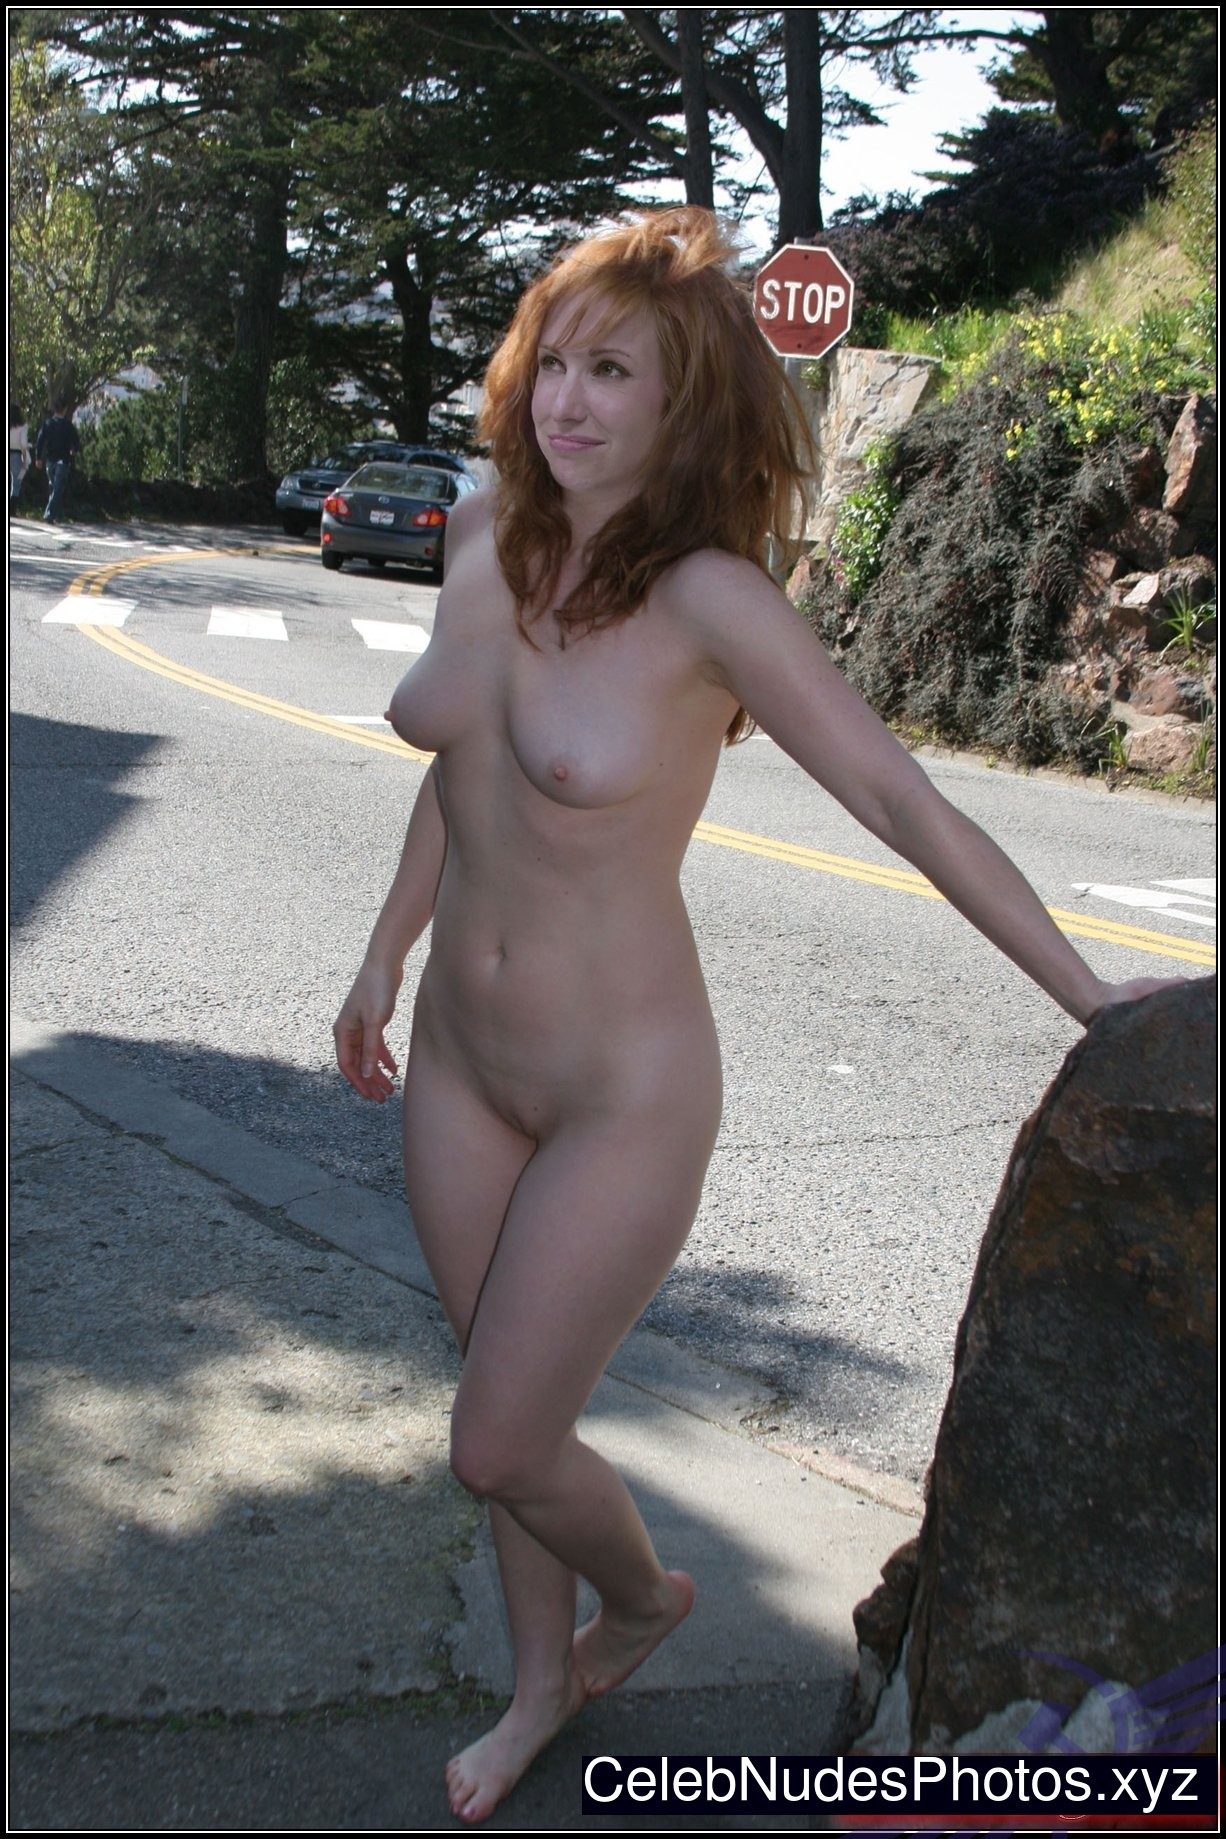 from Santana nude playboy pictures of kari byron